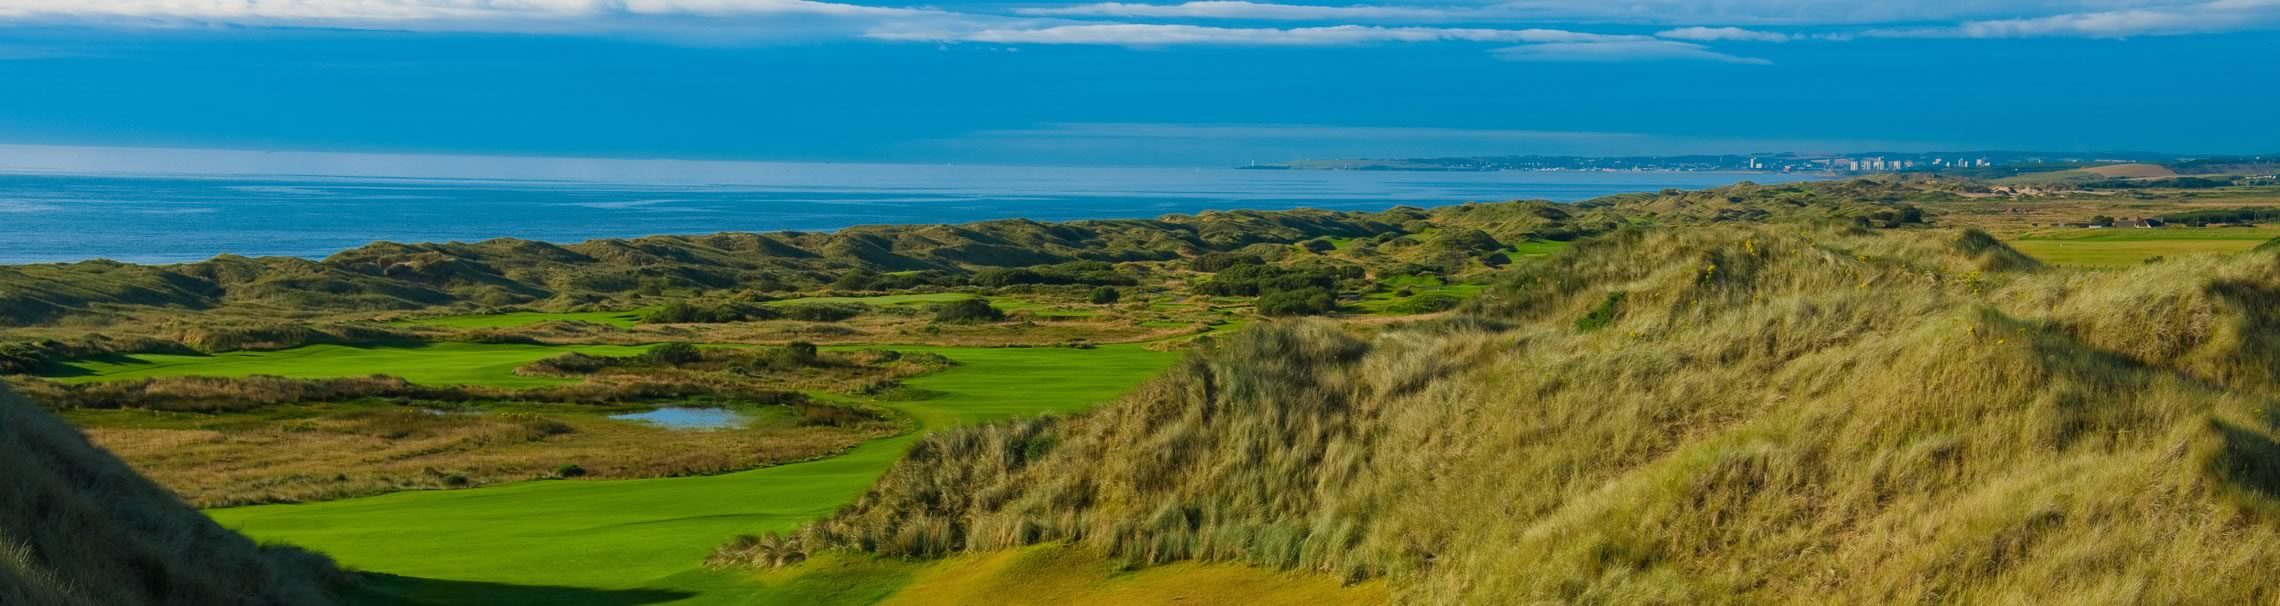 Golf Trips In Ireland And Scotland With Dunbar Golf Tours